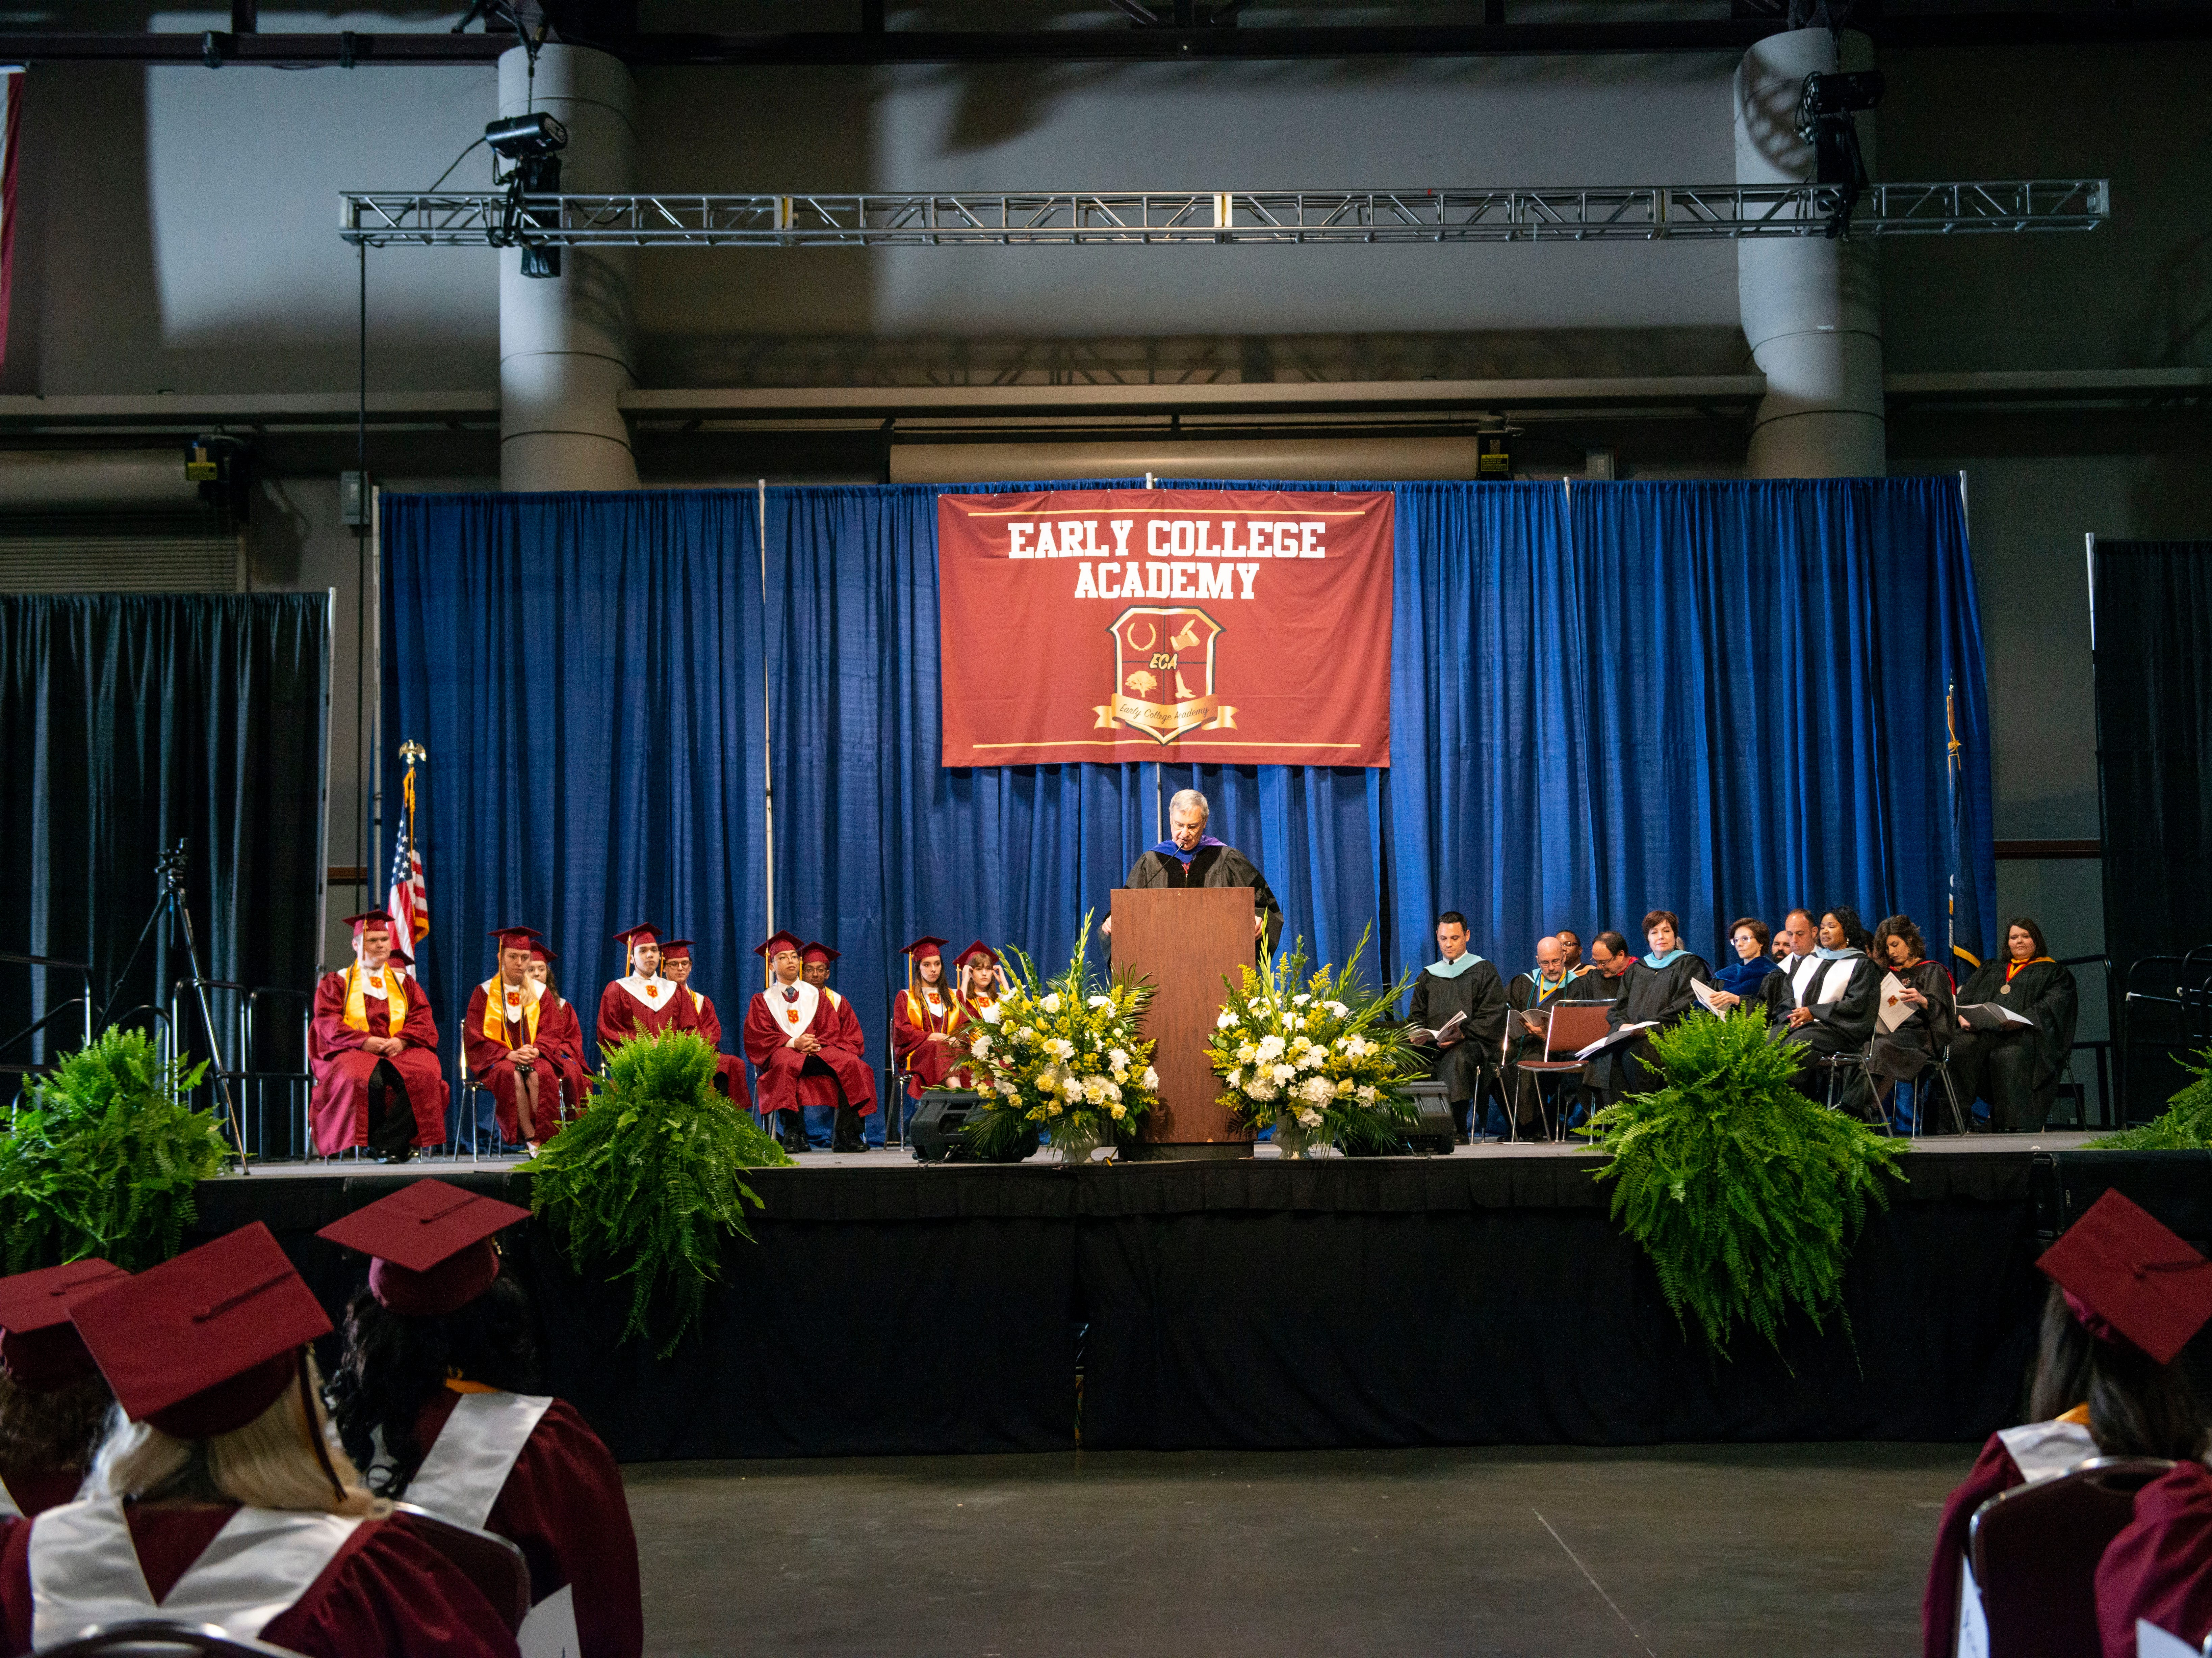 Early College Academy, a Lafayette Parish School System magnet high school, graduated 57 seniors May 9 at the Cajundome Convention Center. They also earned associate degrees from South Louisiana Community College.